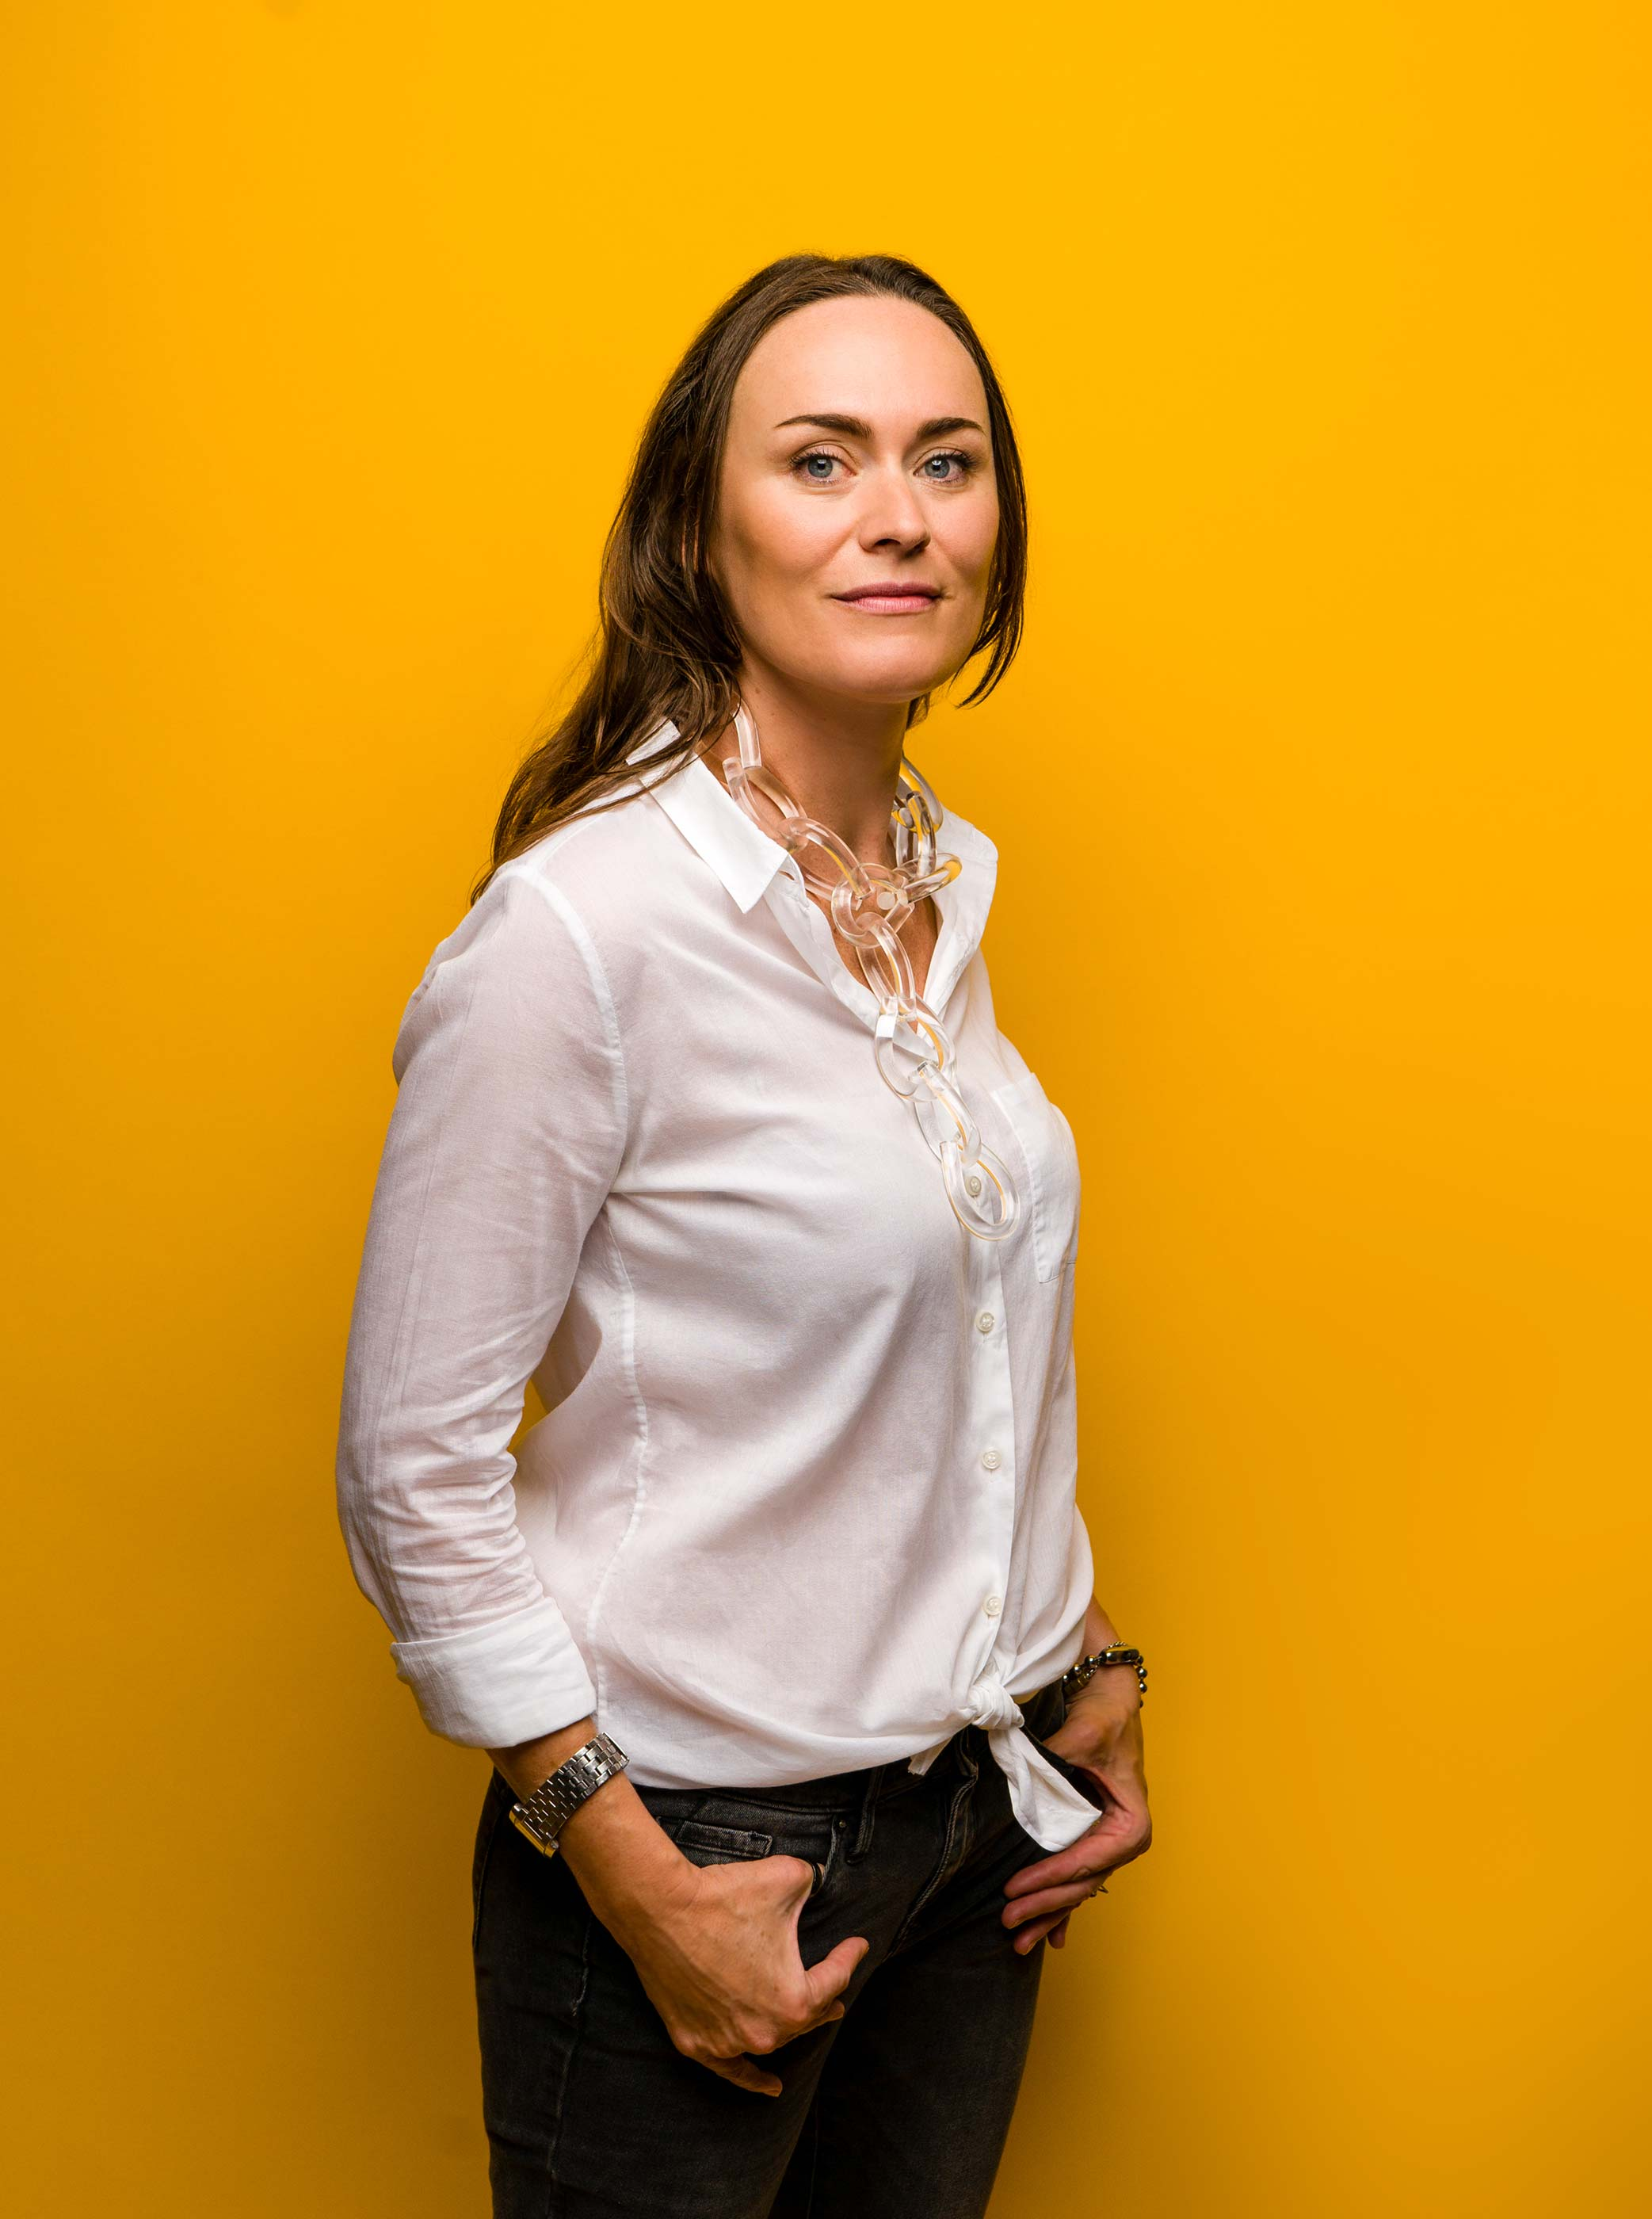 Woman Portrait on Yellow Background